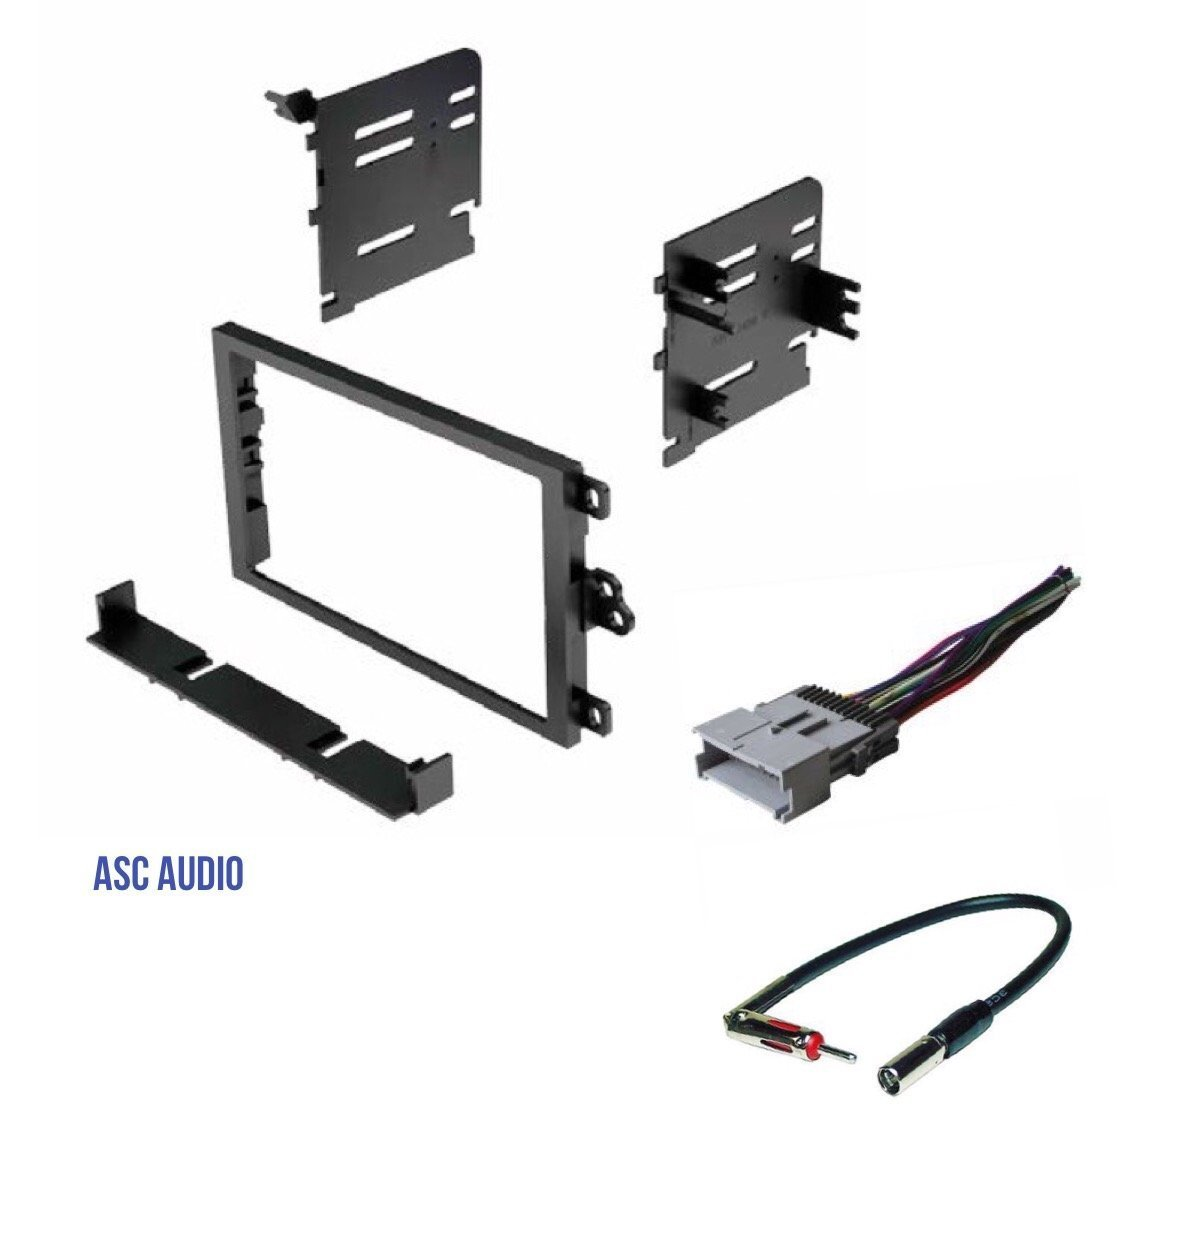 04-07 Verona Other 05-08 Reno ASC Double Din Car Stereo Install Dash Kit and Wire Harness for 04-06 Chevrolet Aveo; Daewoo: 99-02 Lanos 99-02 Nubira; Suzuki: 04-08 Forenza 99-02 Leganza